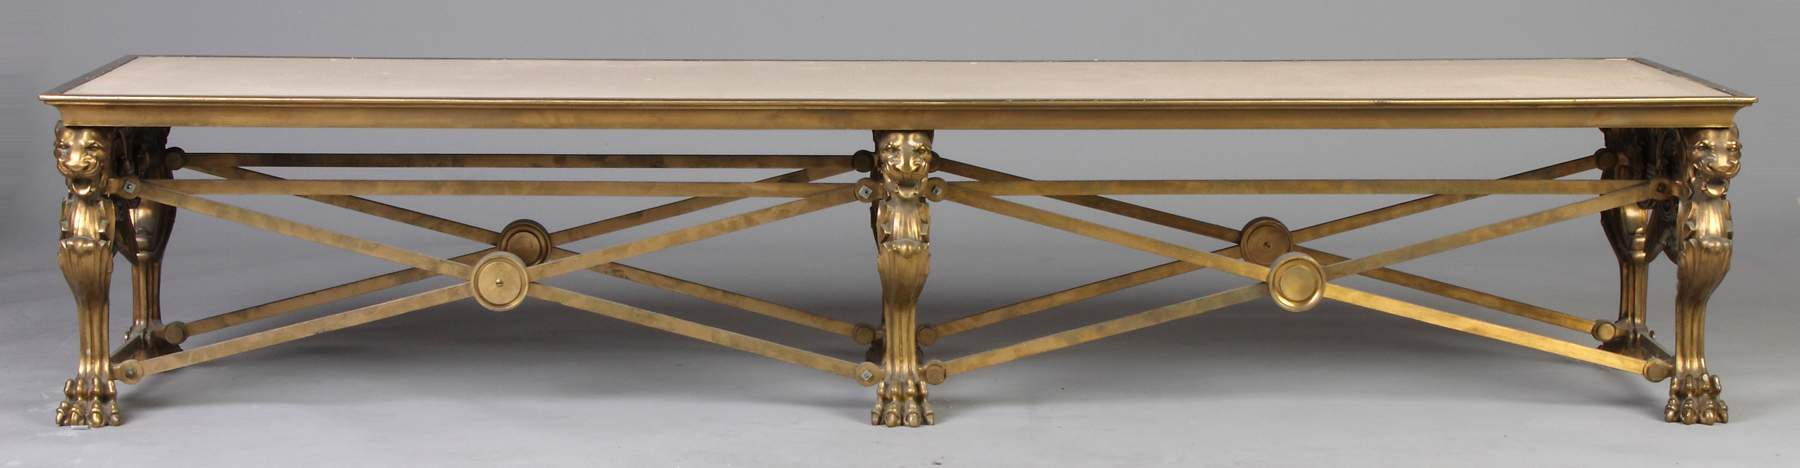 A Pair of American Lacquered Bronze Hall Benches